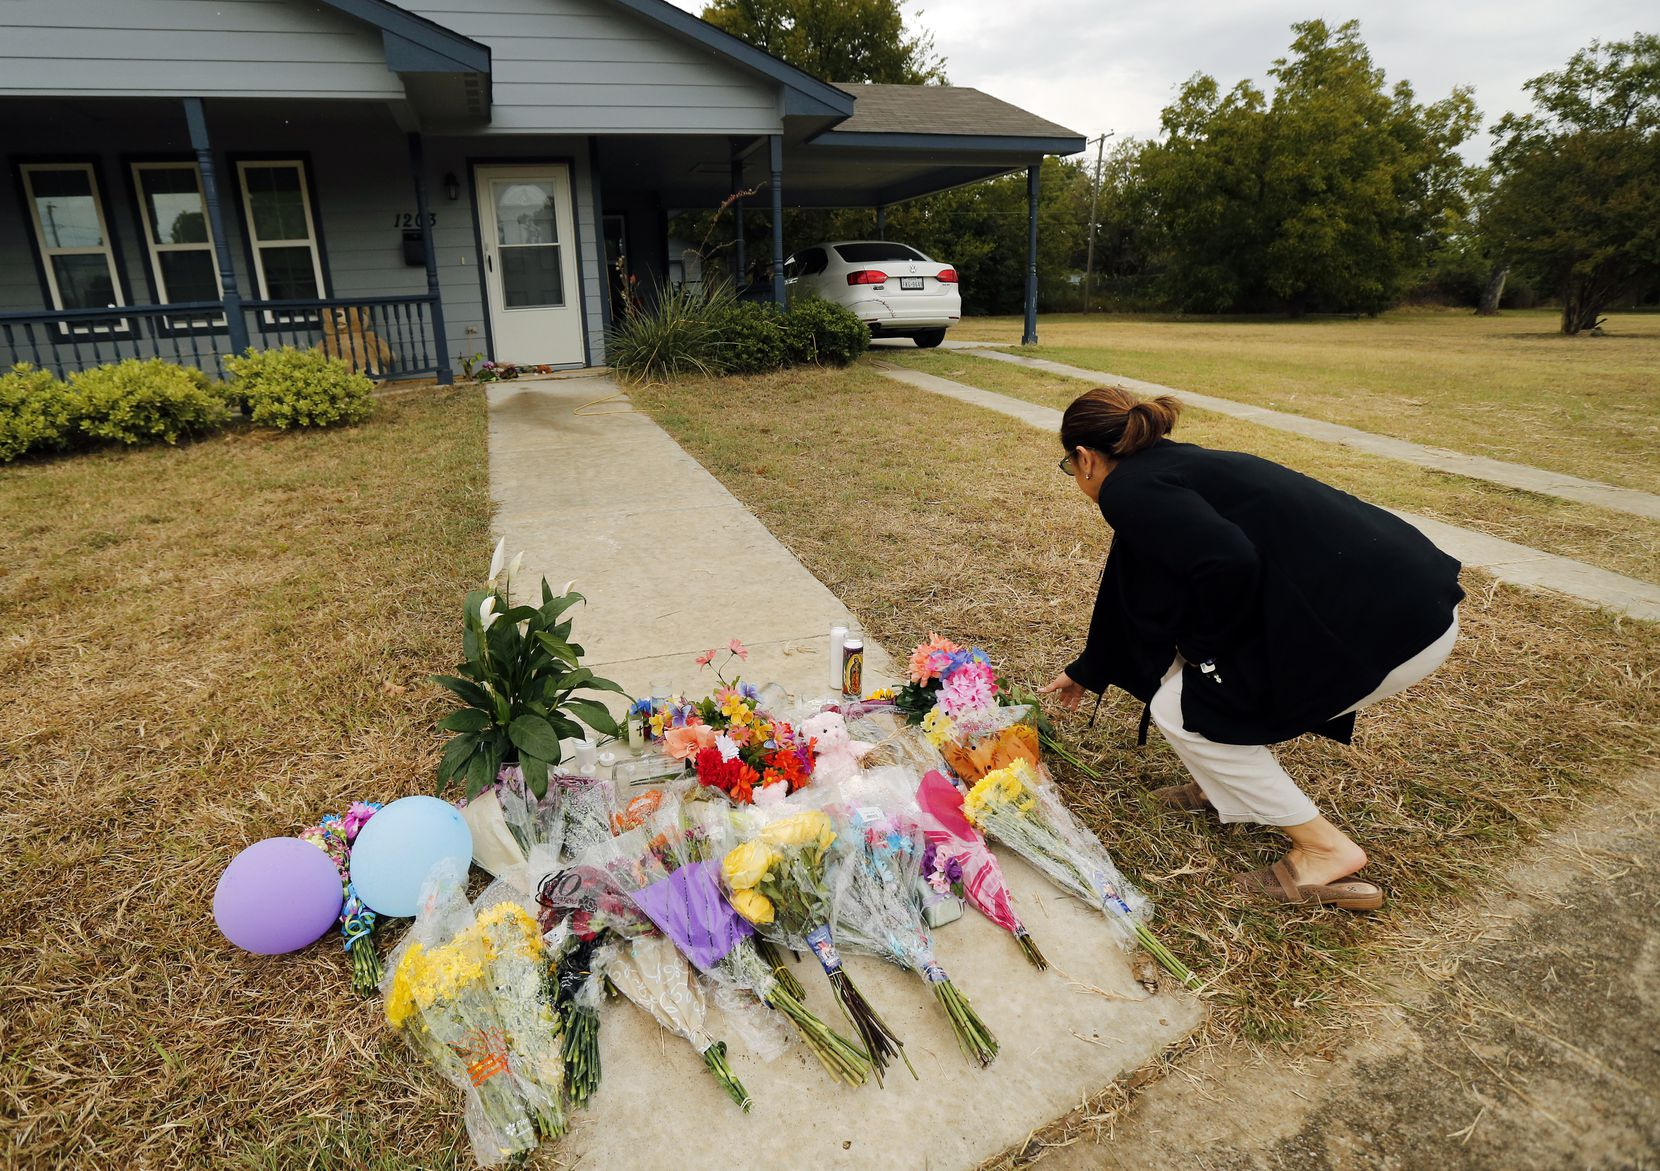 Anastasia Gonzalez of Burleson left flowers on the front sidewalk of Atatiana Jefferson's home on East Allen Avenue in Fort Worth. In the wake of Fort Worth officer Aaron Dean shooting and killing Jefferson in her home, people have been leaving flowers at a memorial.  (Tom Fox/Staff Photographer)